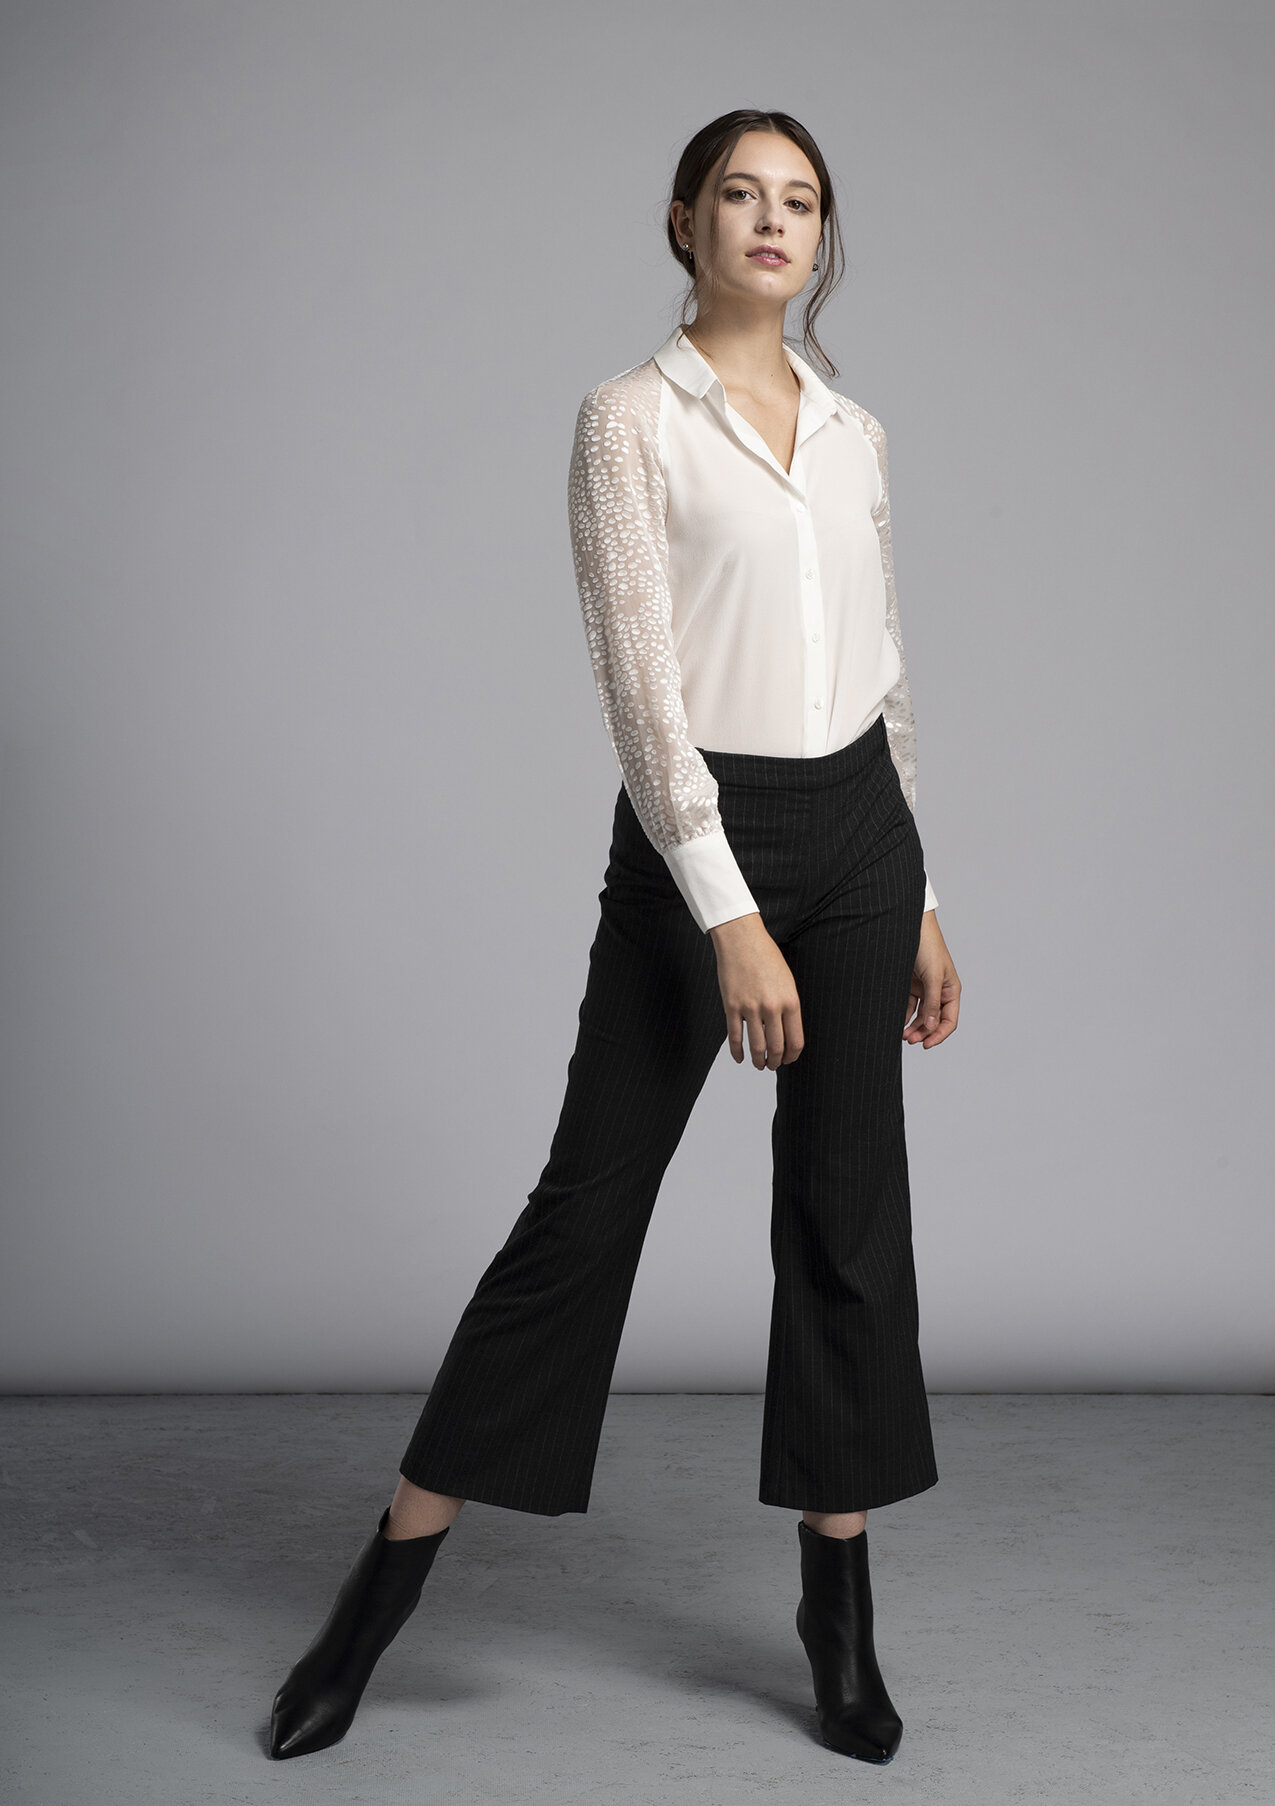 Made-to-measure women's Stevie silk blouse